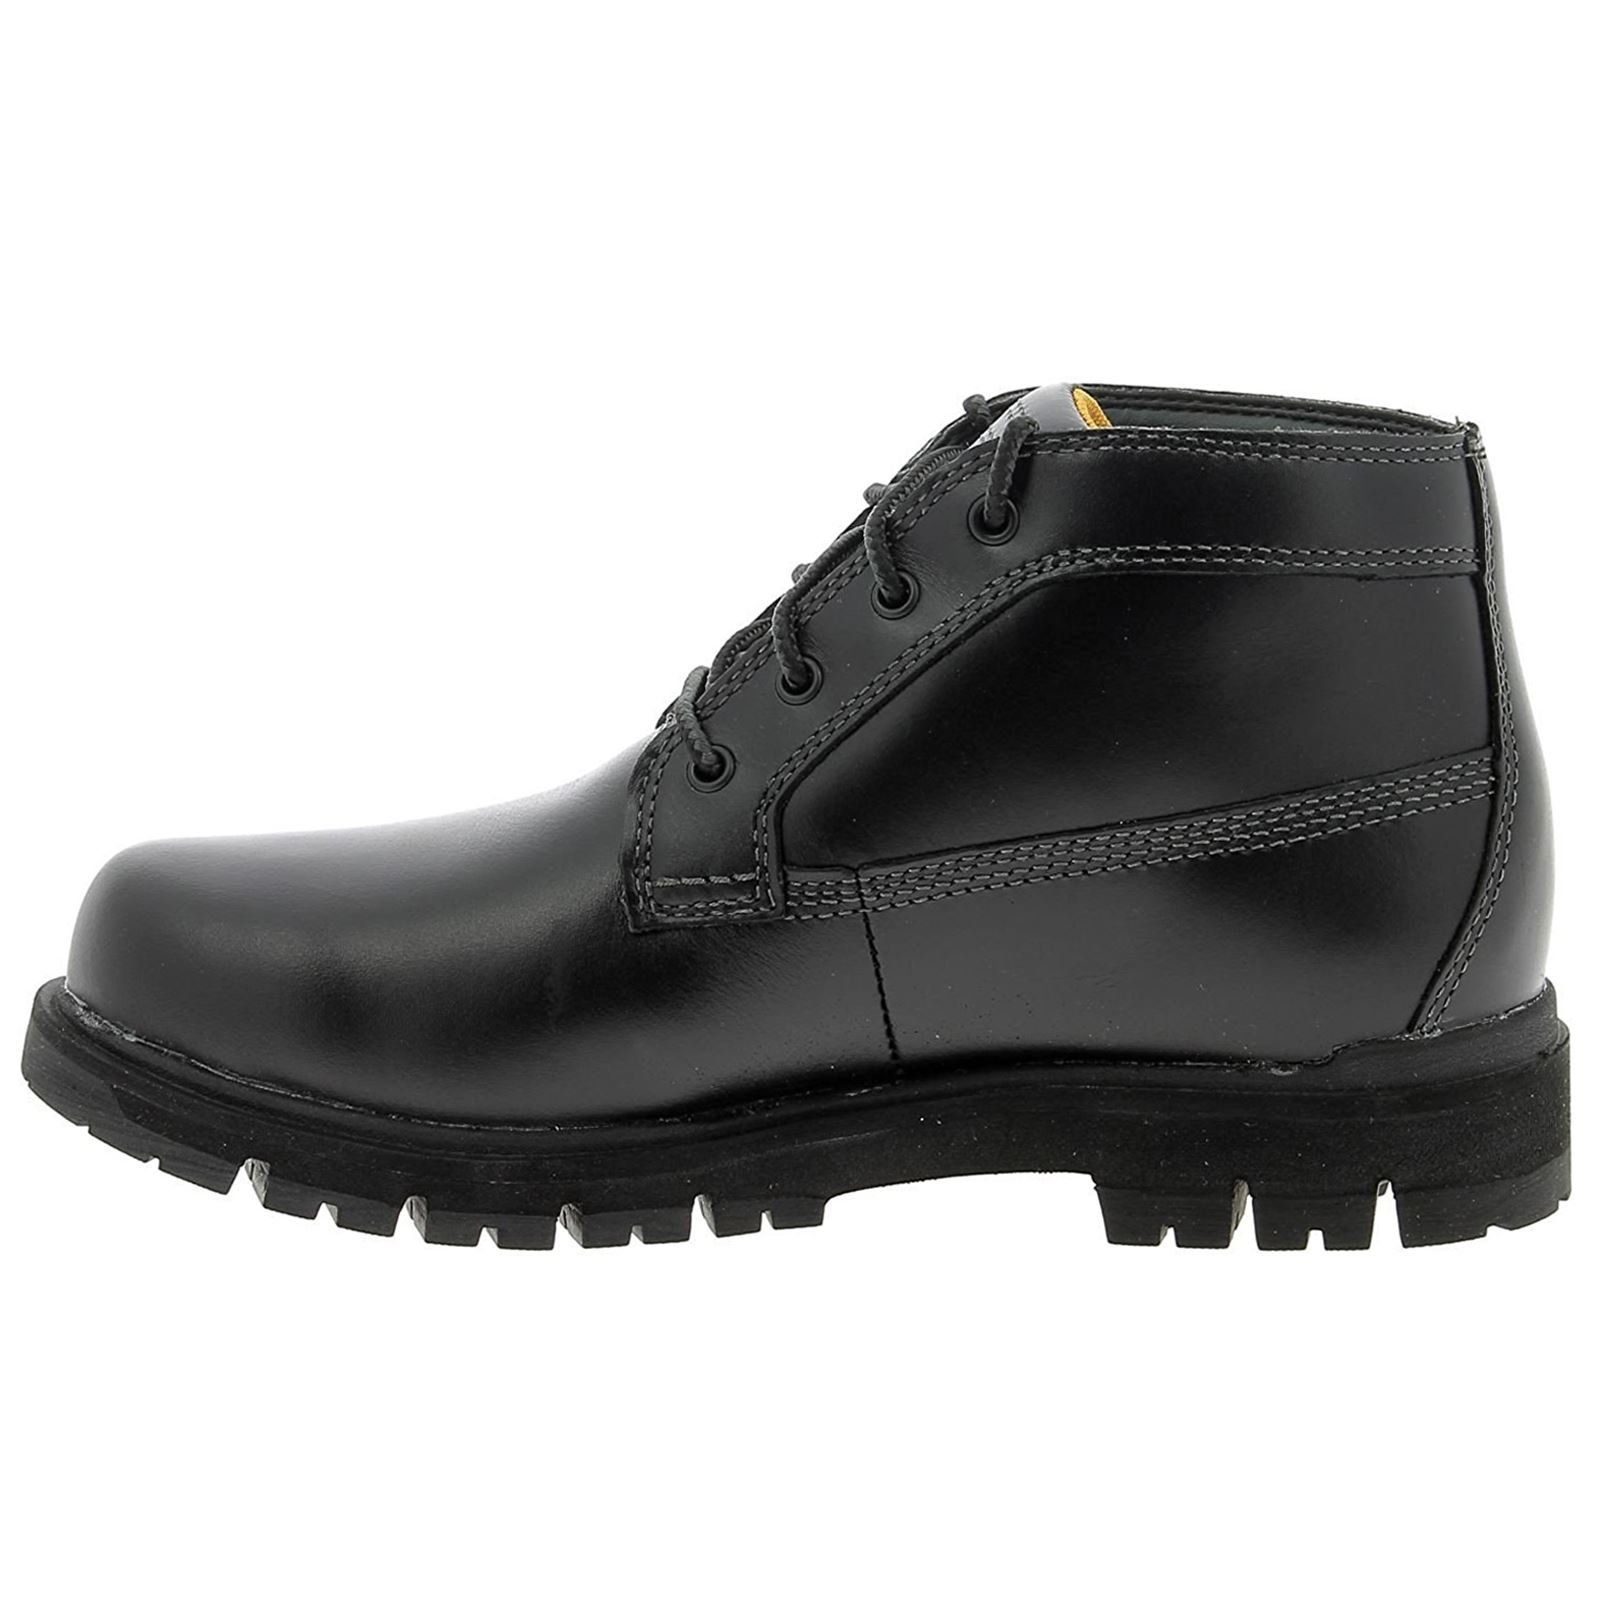 1e274f9de567 Timberland Mens Radford Chukka Waterproof Black Leather Boots 10 US      More info could be found at the image url. (This is an affiliate link)   ...